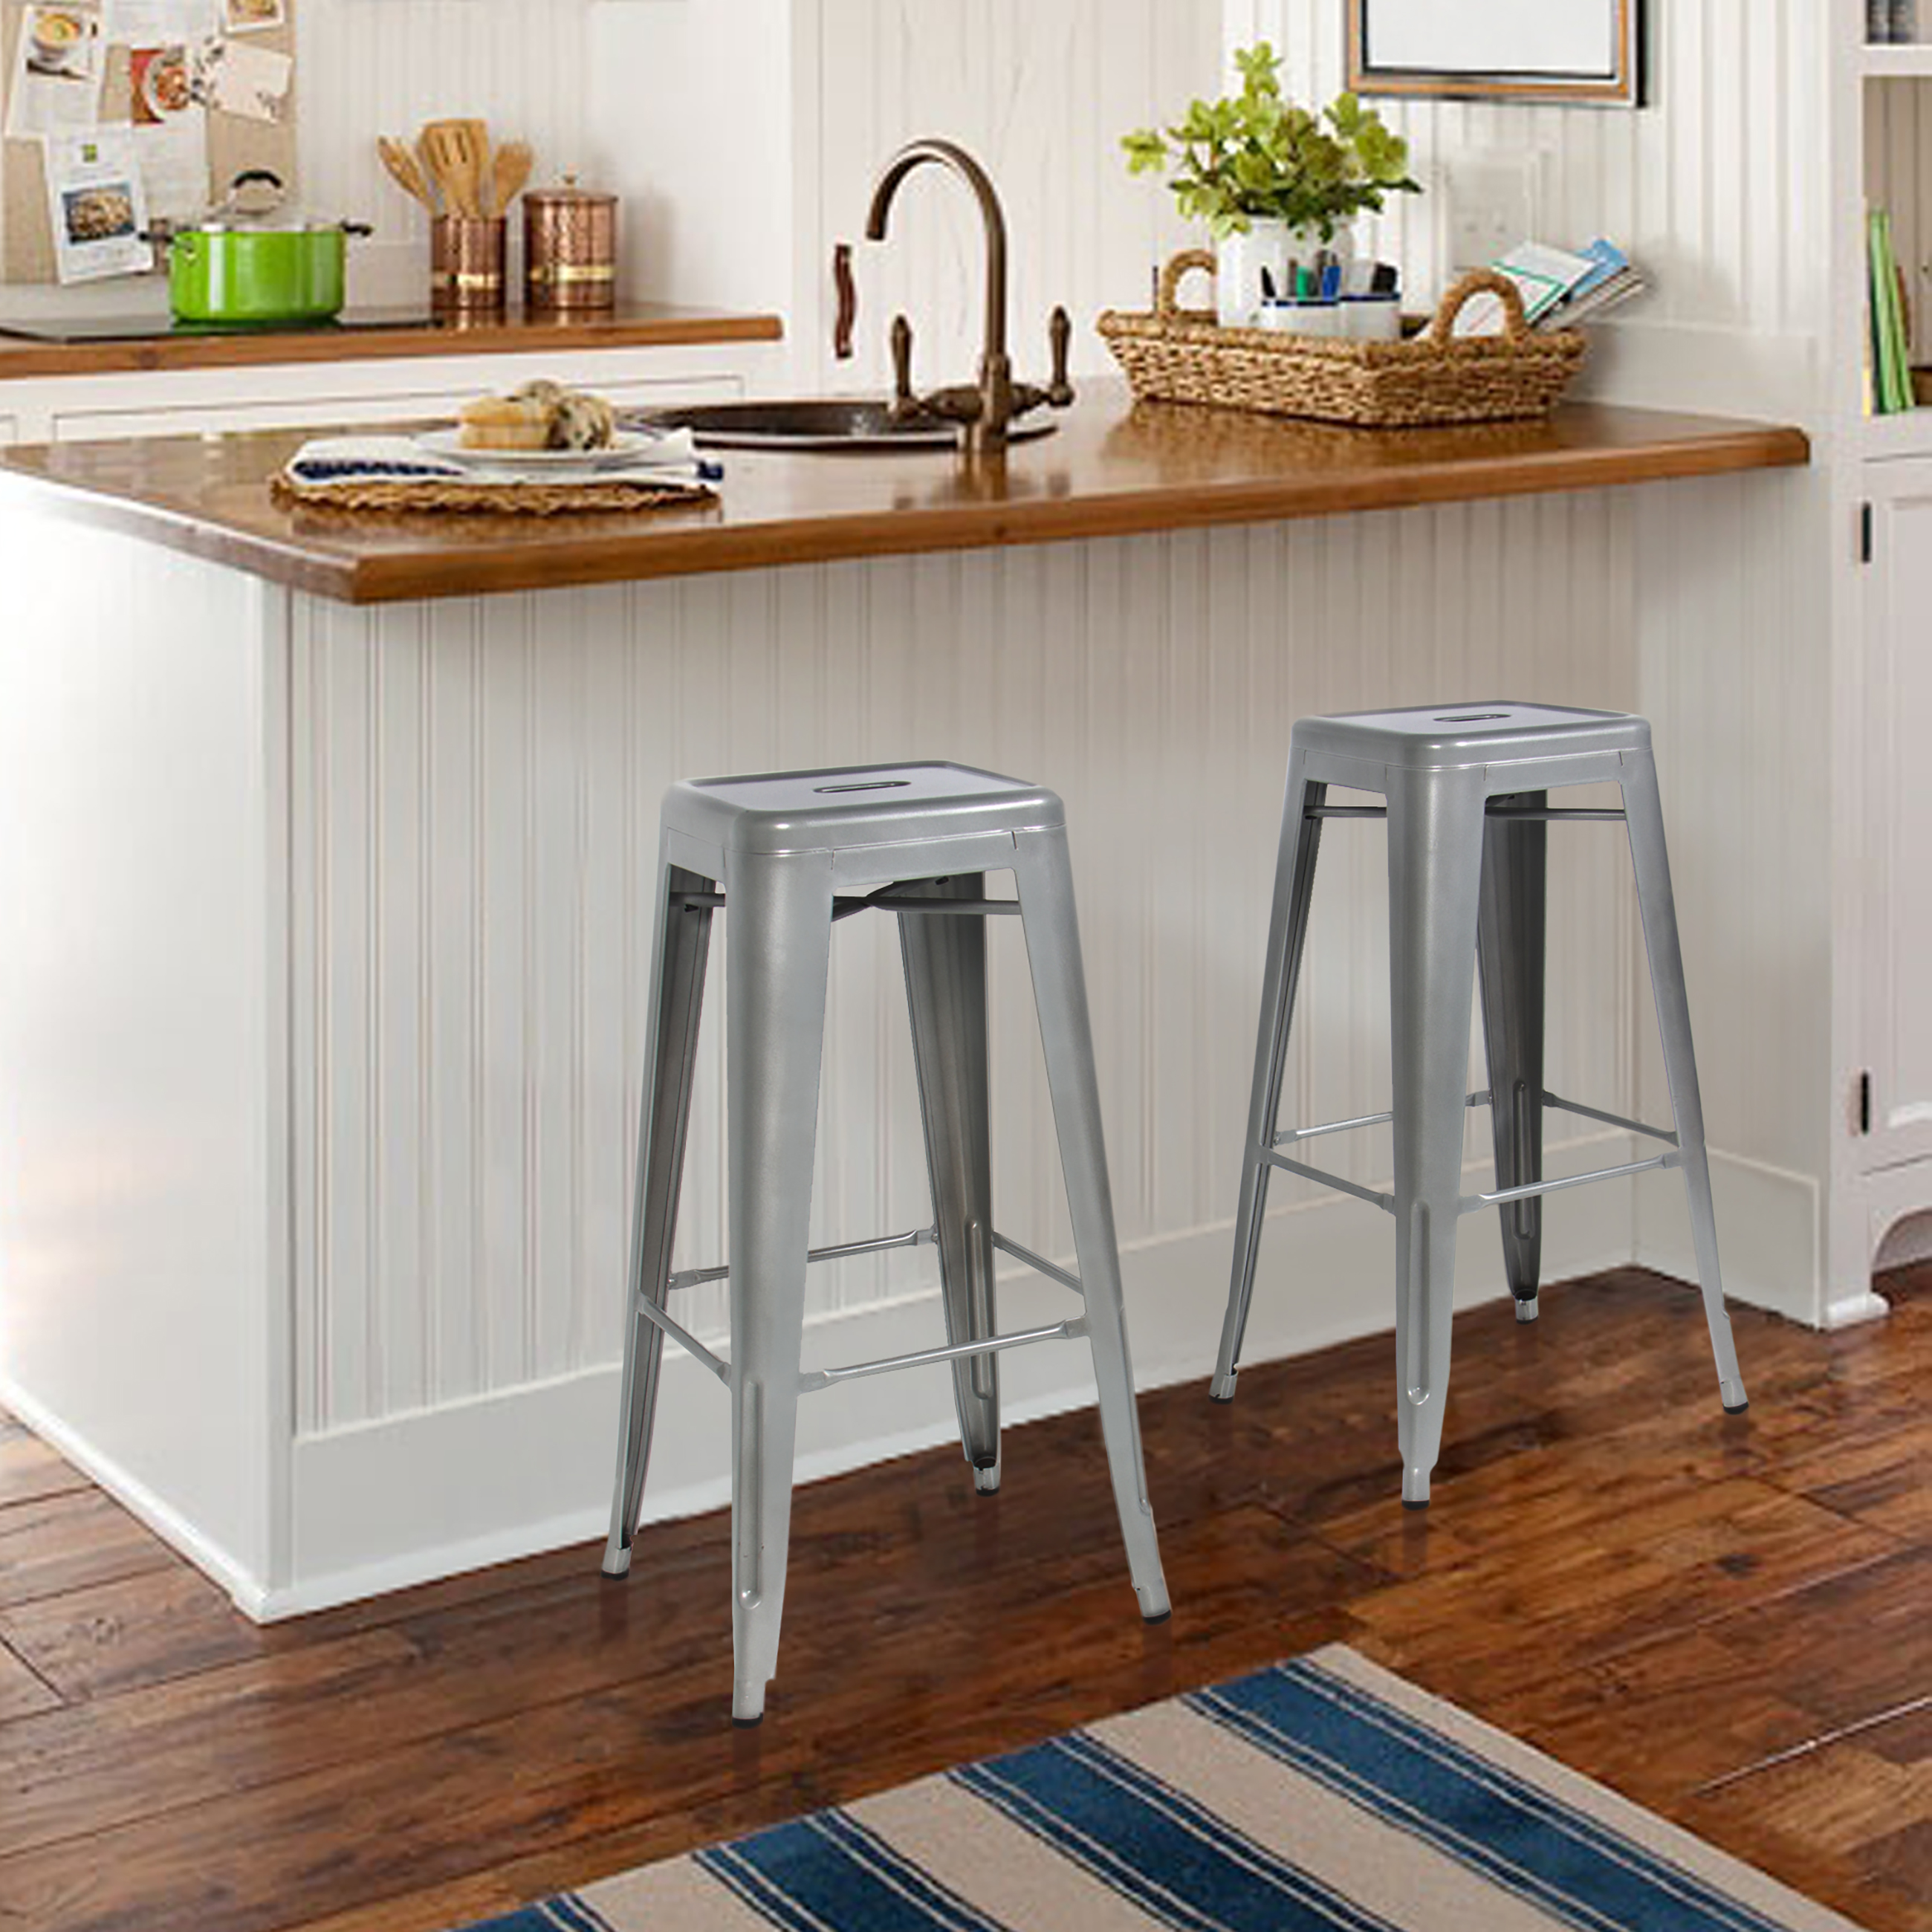 "Best Choice Products 30"" Set of 2 Modern Industrial Backless Metal Bar Stools - Silver"